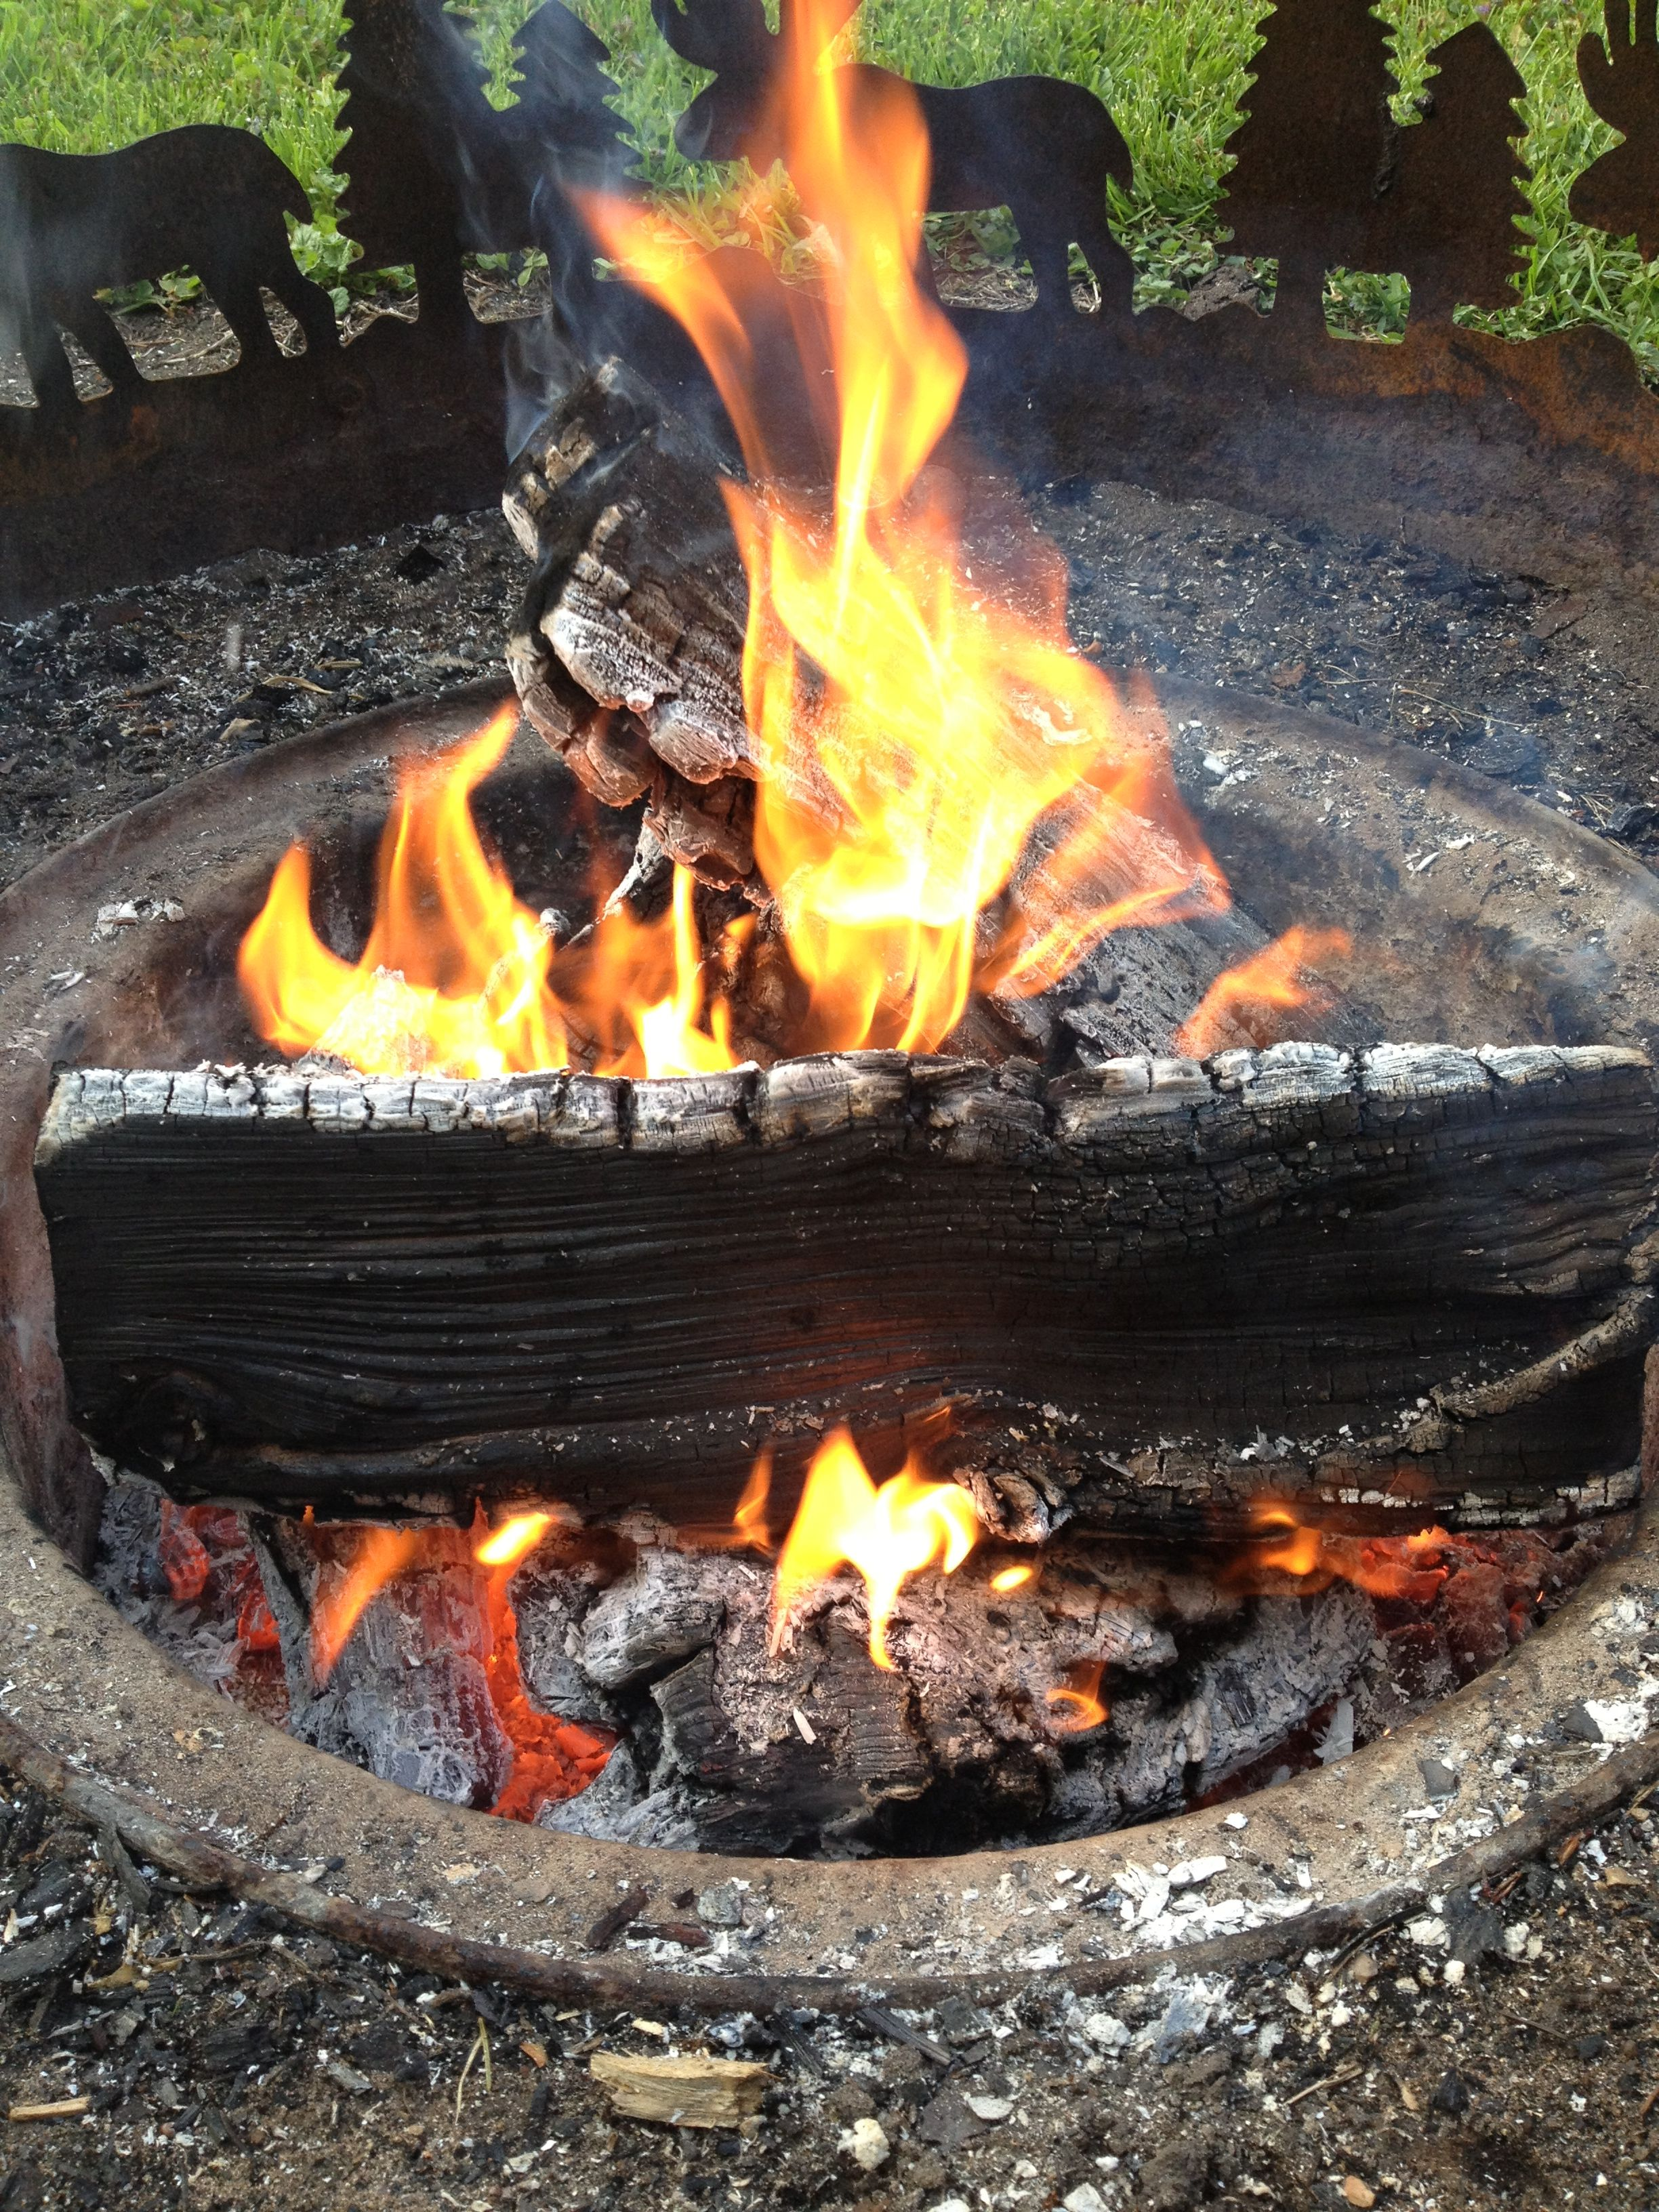 Campfire=warmth fort fun cooking recreation solitude Light one